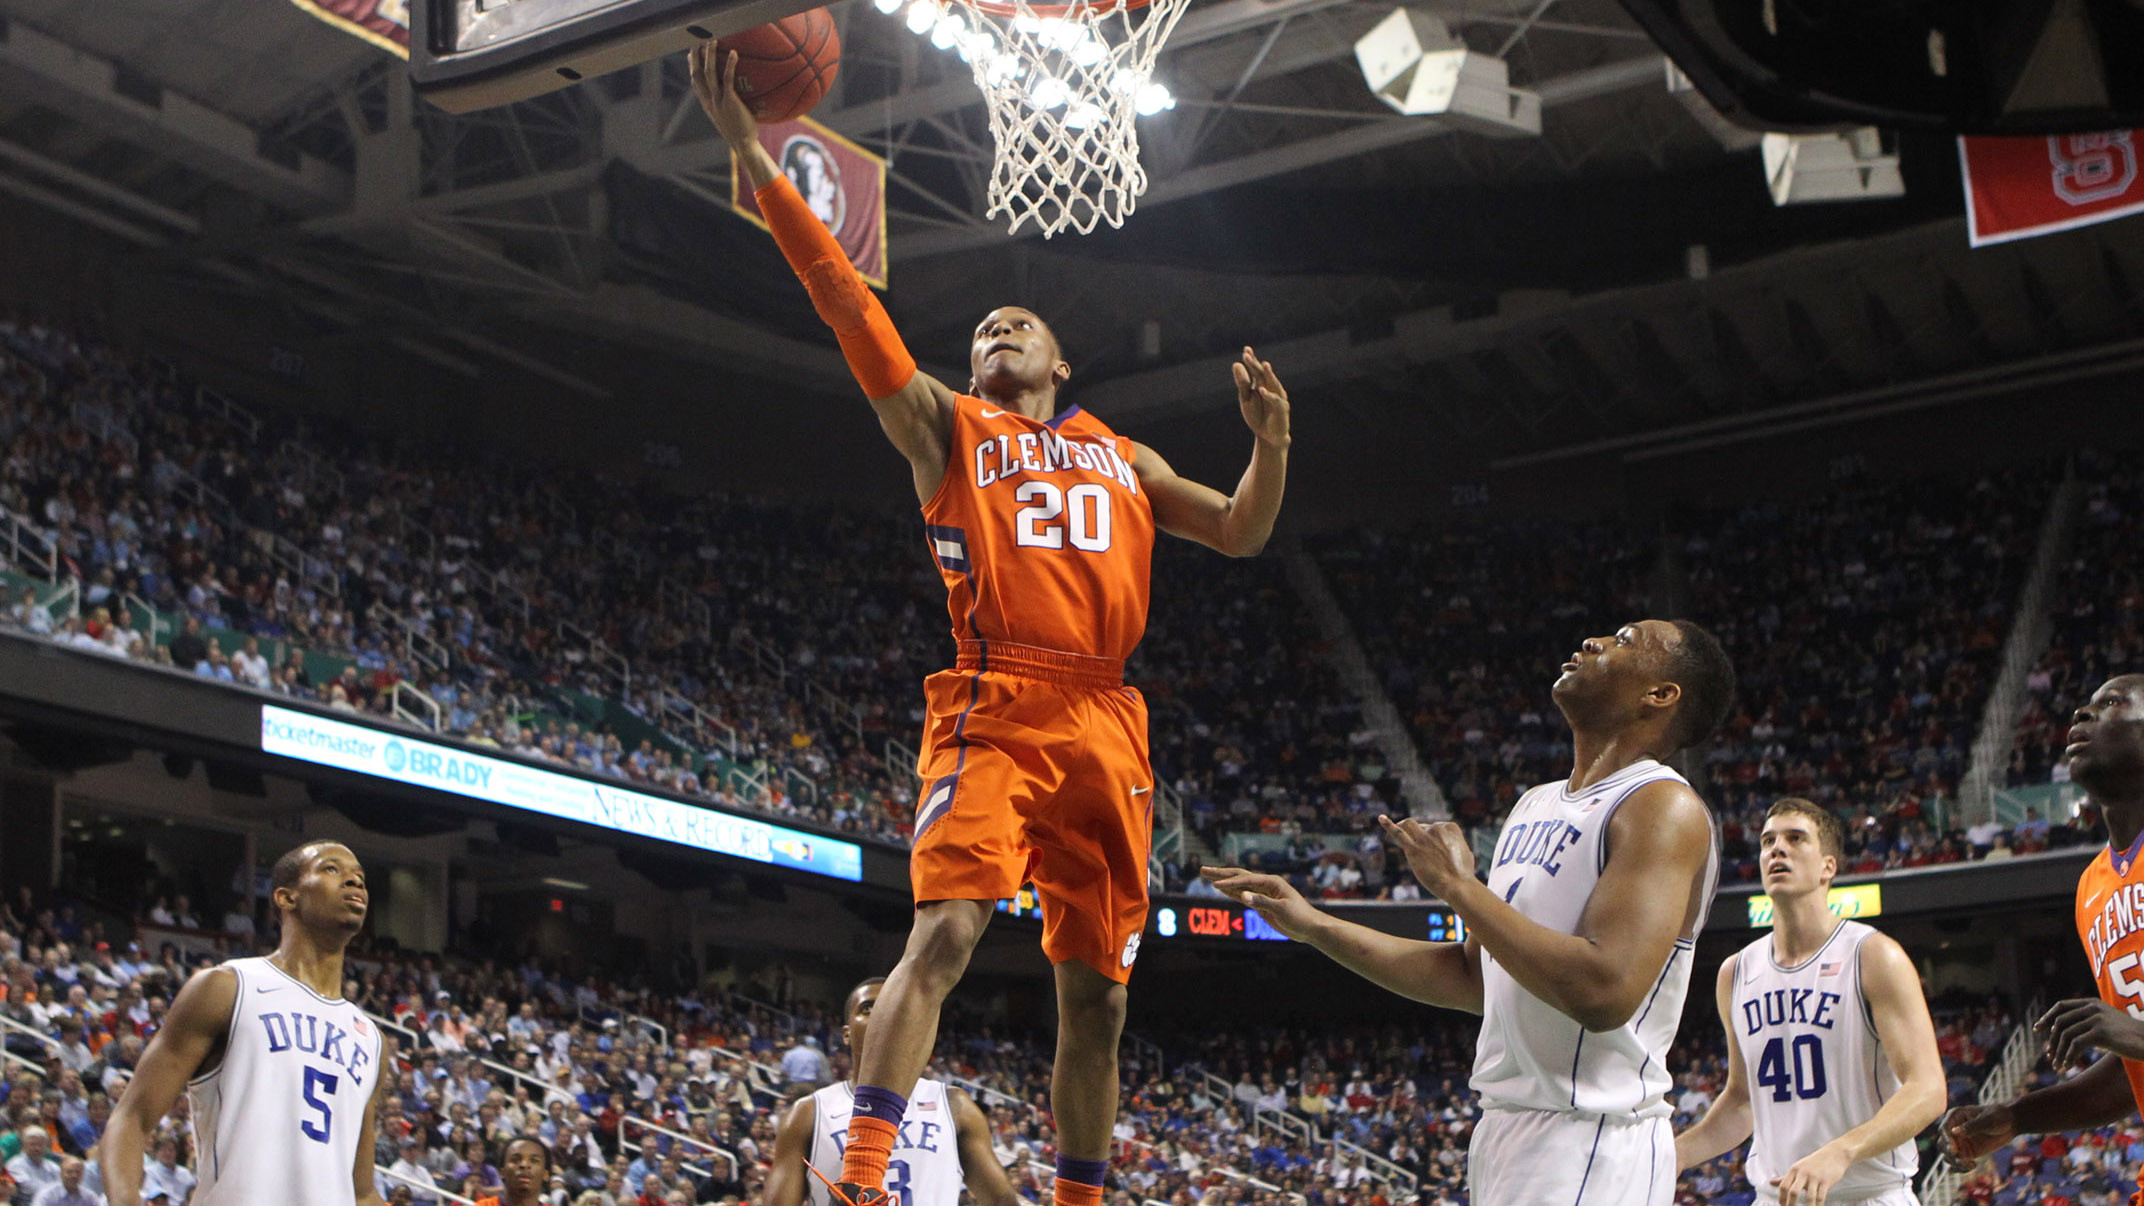 Tigers, Illini to Tangle Early Sunday in Second Round NIT Action